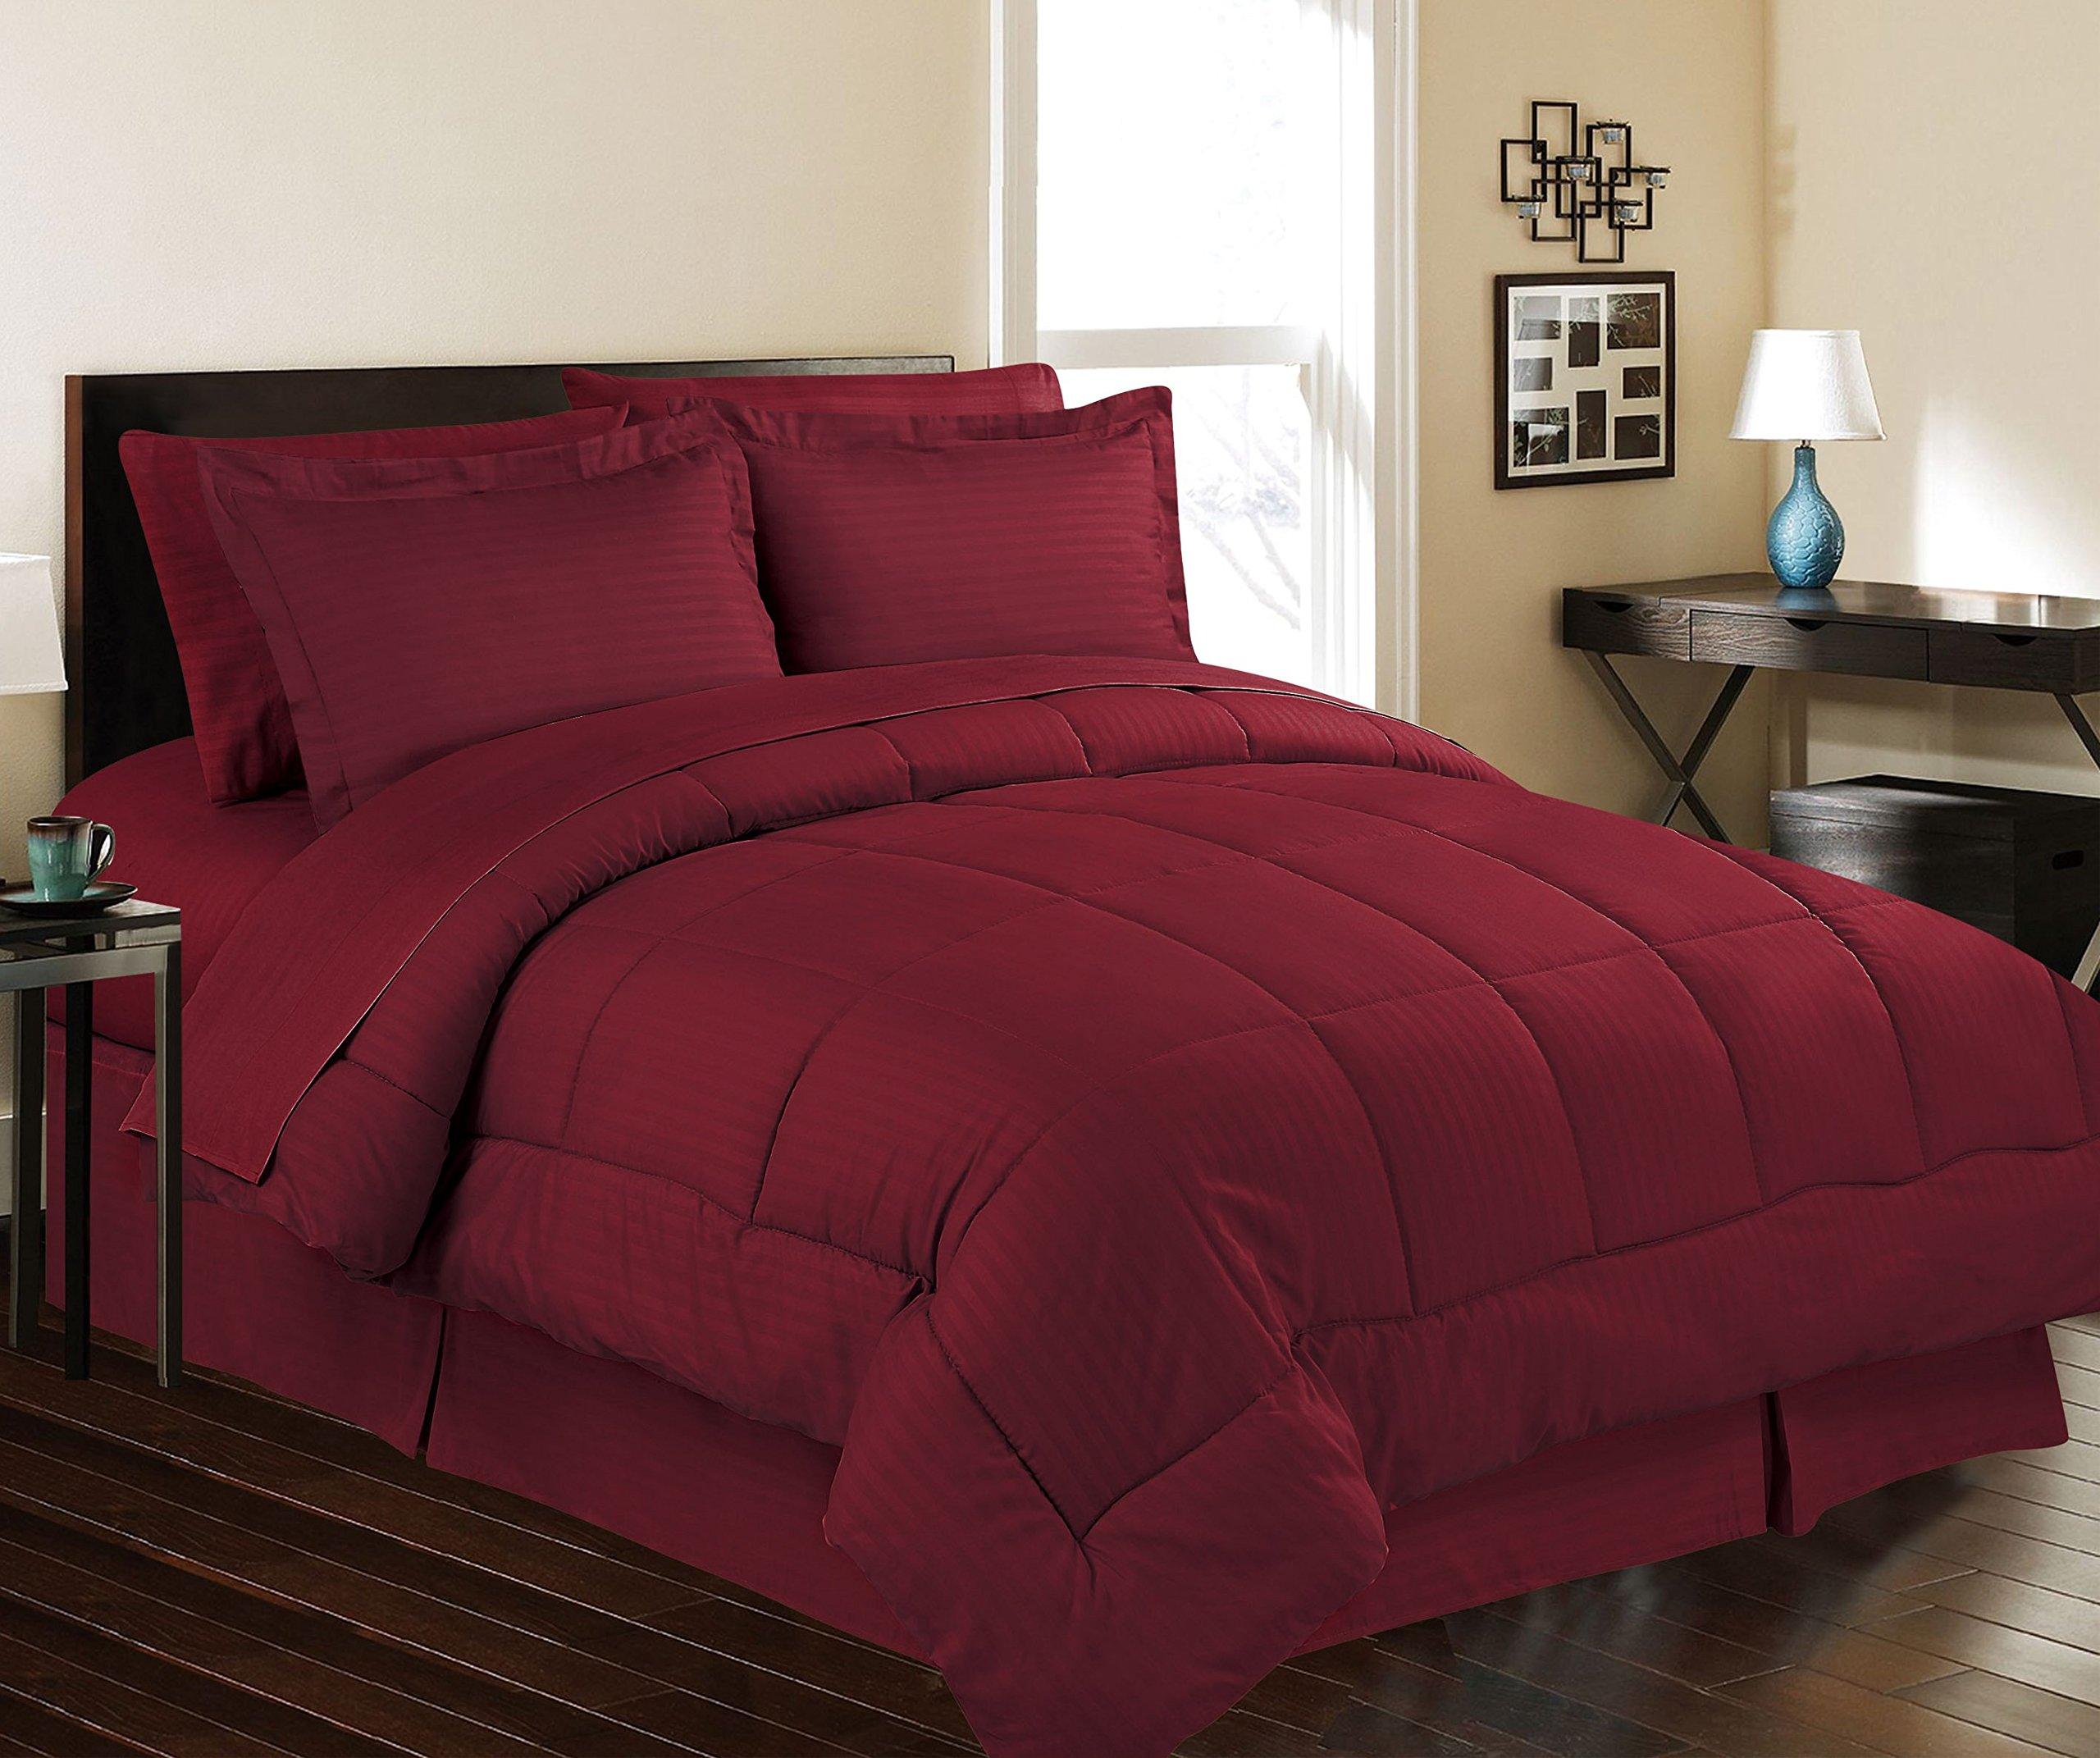 Décor&More Hotel Collection Queen Size 8 Piece Bed in a Bag Down Alternative Comforter Set - Burgundy